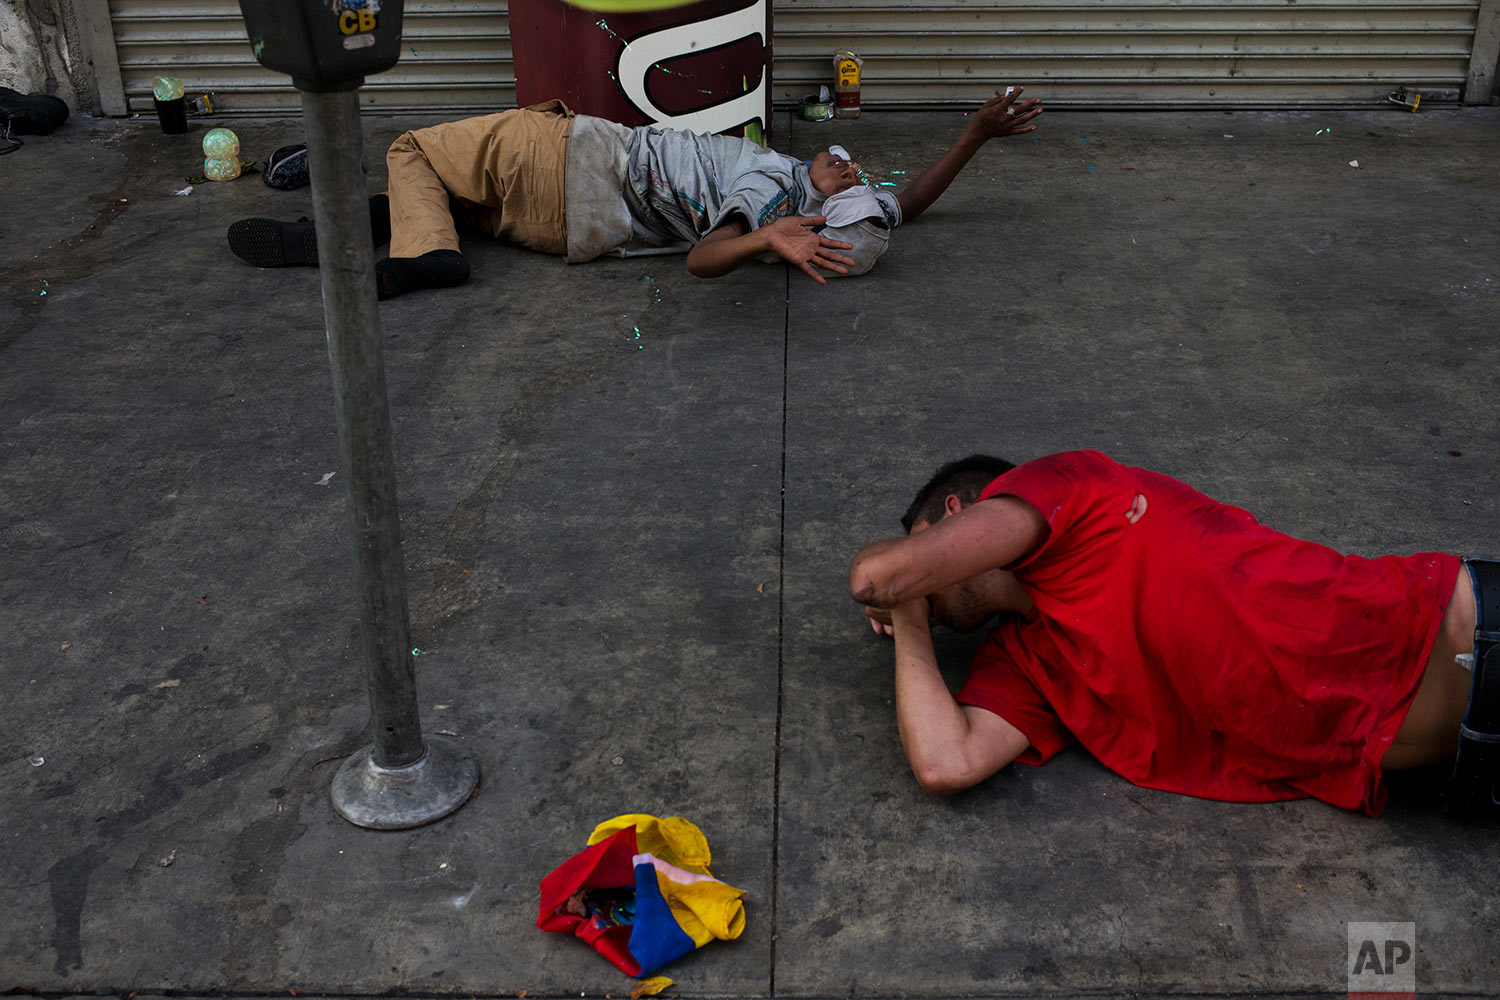 Lying on a urine-stained sidewalk, two homeless drug addicts, high on drugs, hallucinate in Los Angeles' Skid Row area, home to the nation's largest concentration of homeless people, Friday, Sept. 1, 2017. According to Midnight Mission's Joey Weinert, a former drug addict who now helps homeless people fight their addictions, said many homeless use drugs and alcohol to cope with their lives. (AP Photo/Jae C. Hong)